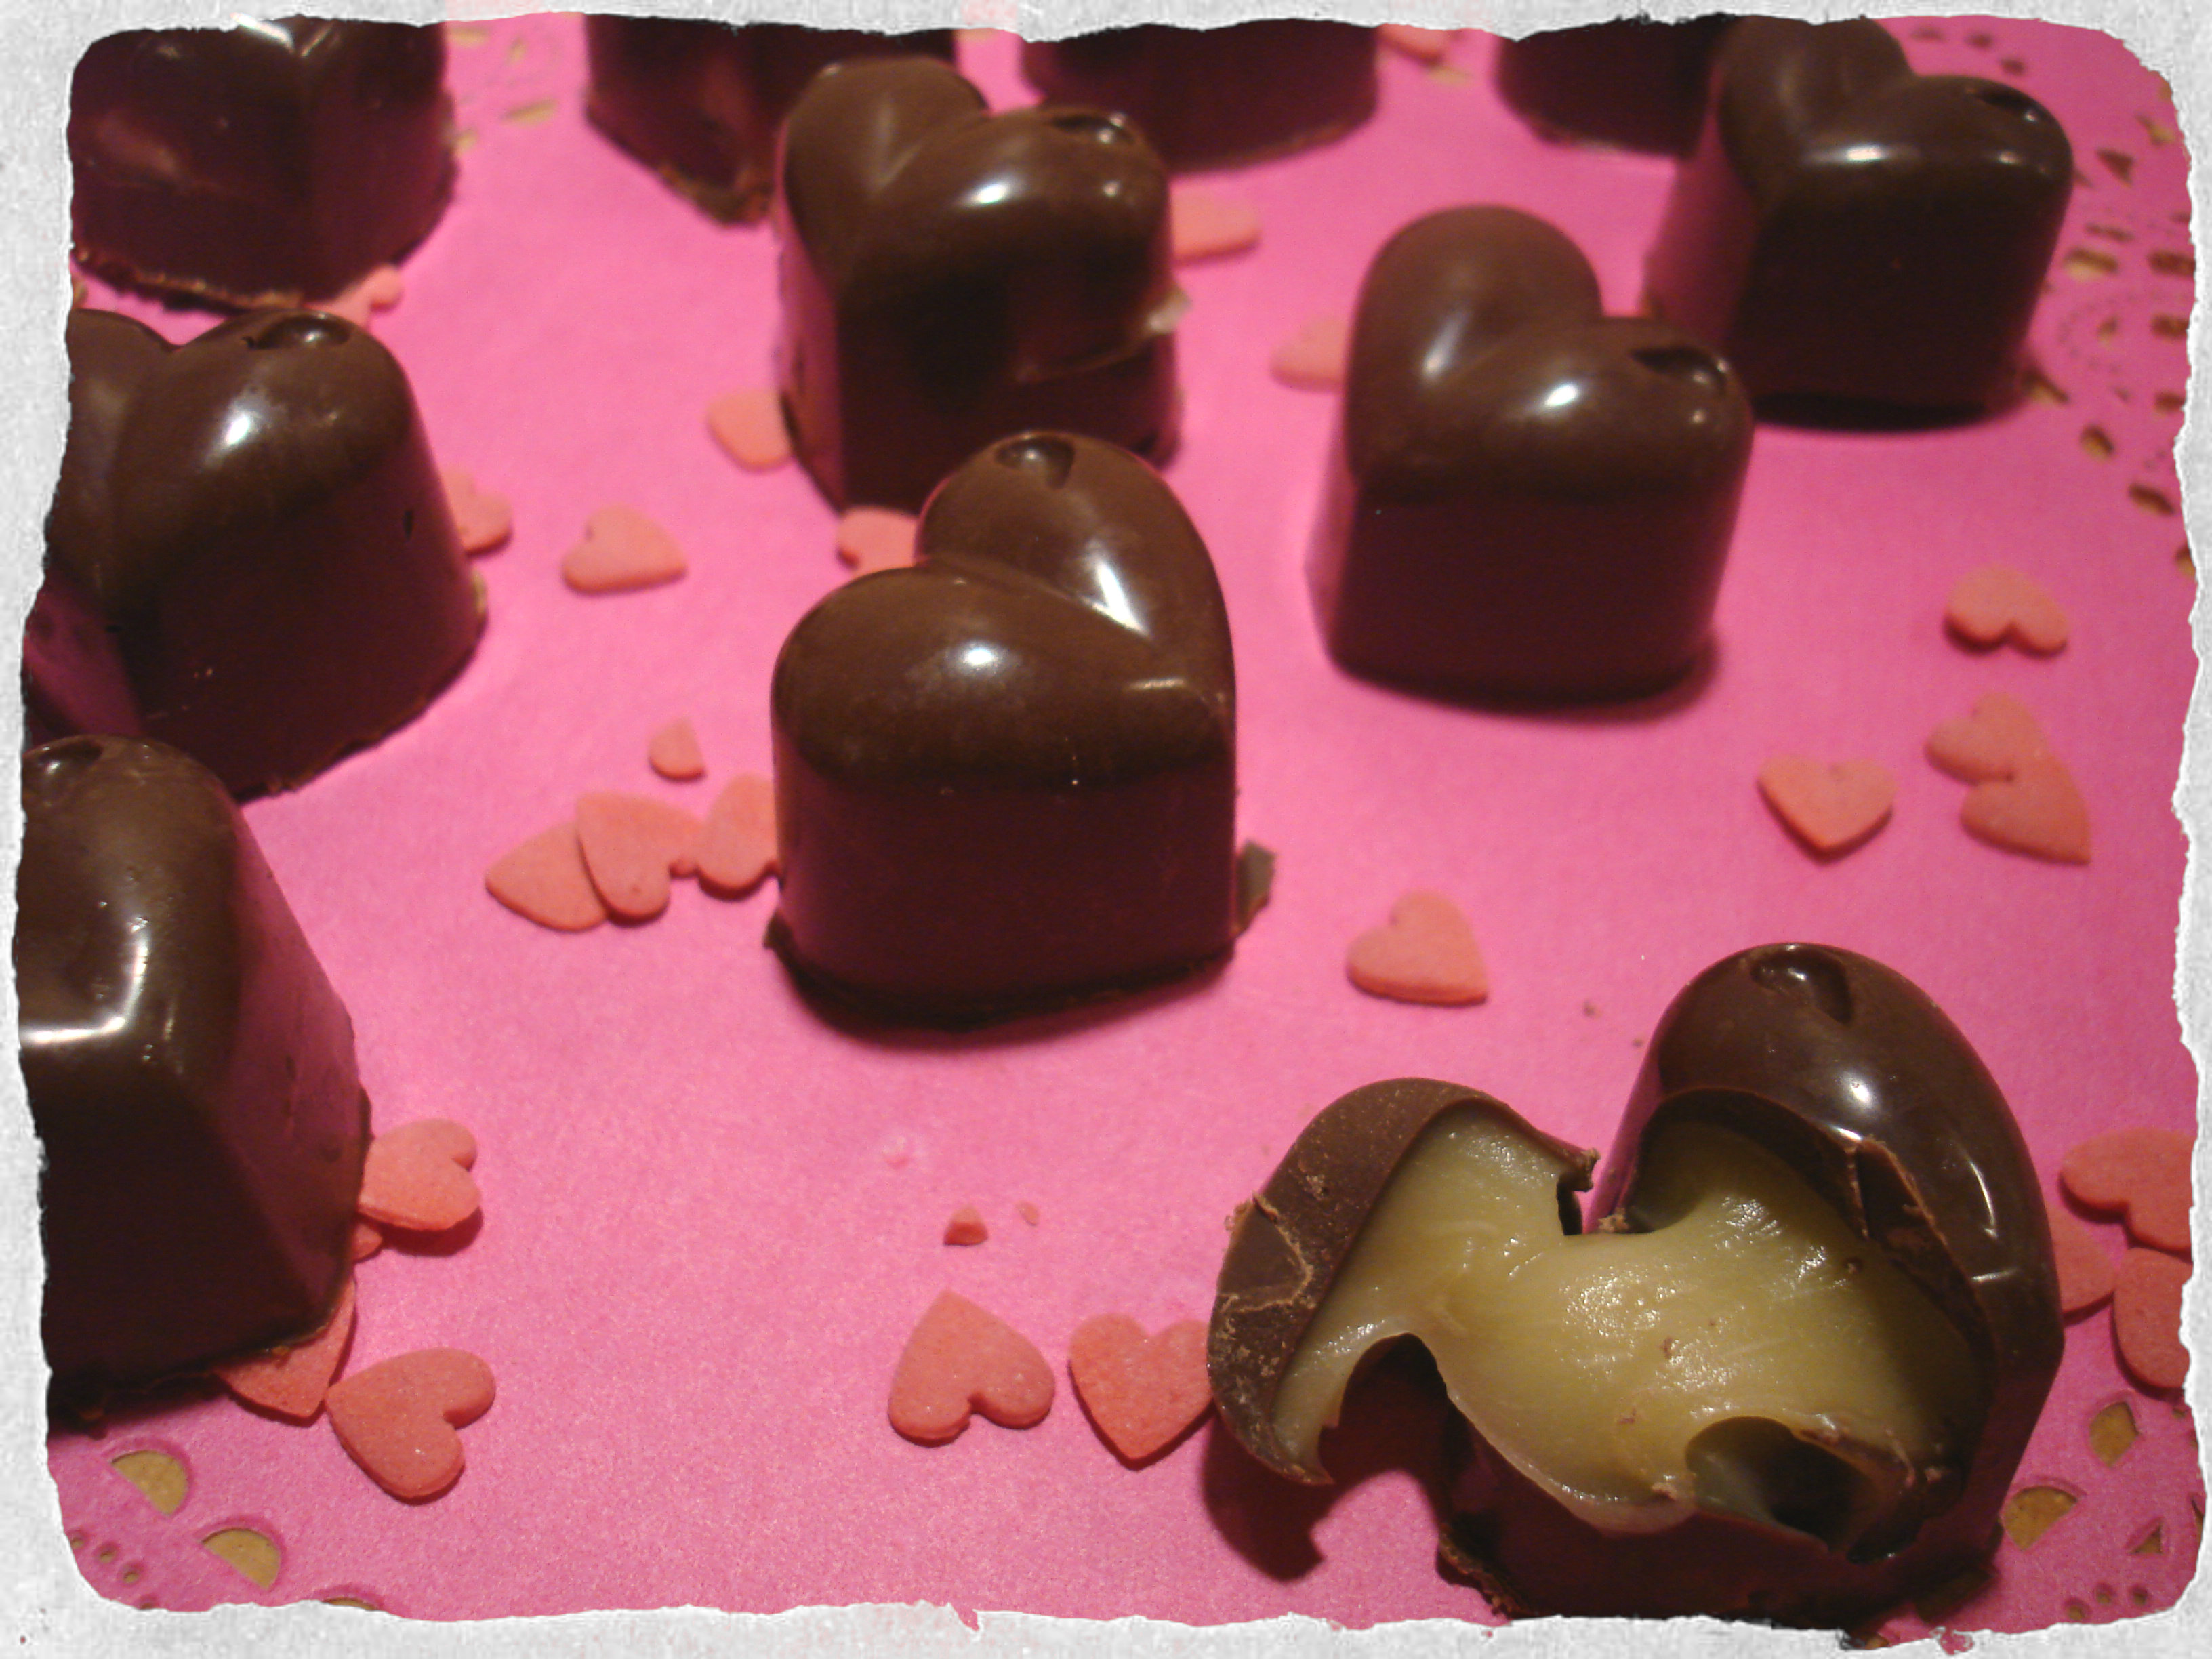 Homemade filled chocolates with Bailey's cream